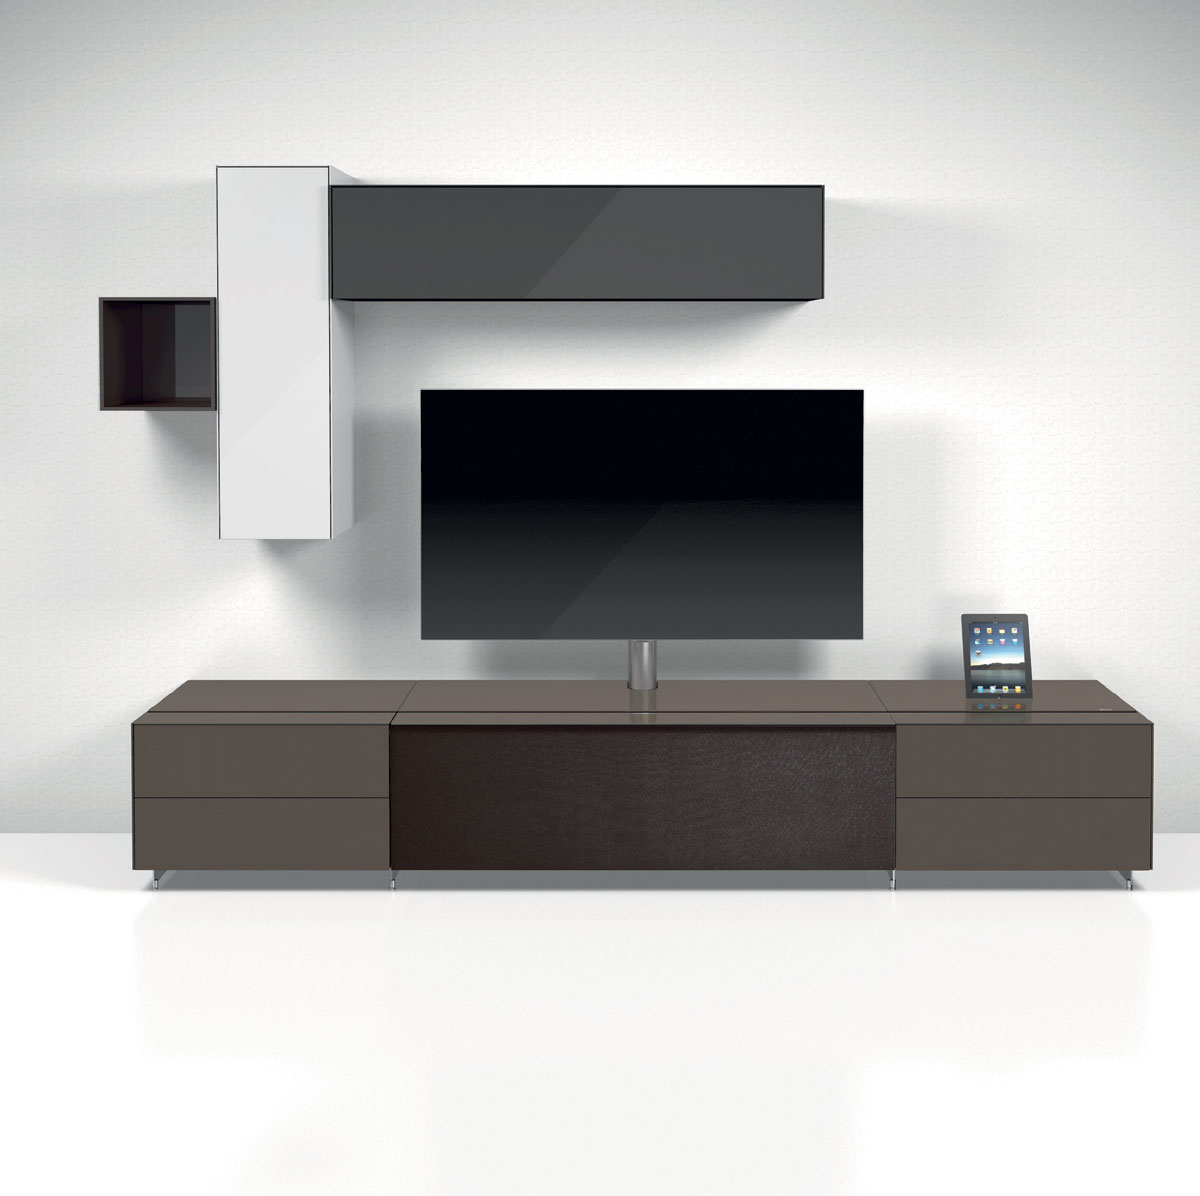 spectral cocoon archive tv m bel und hifi m bel guide. Black Bedroom Furniture Sets. Home Design Ideas